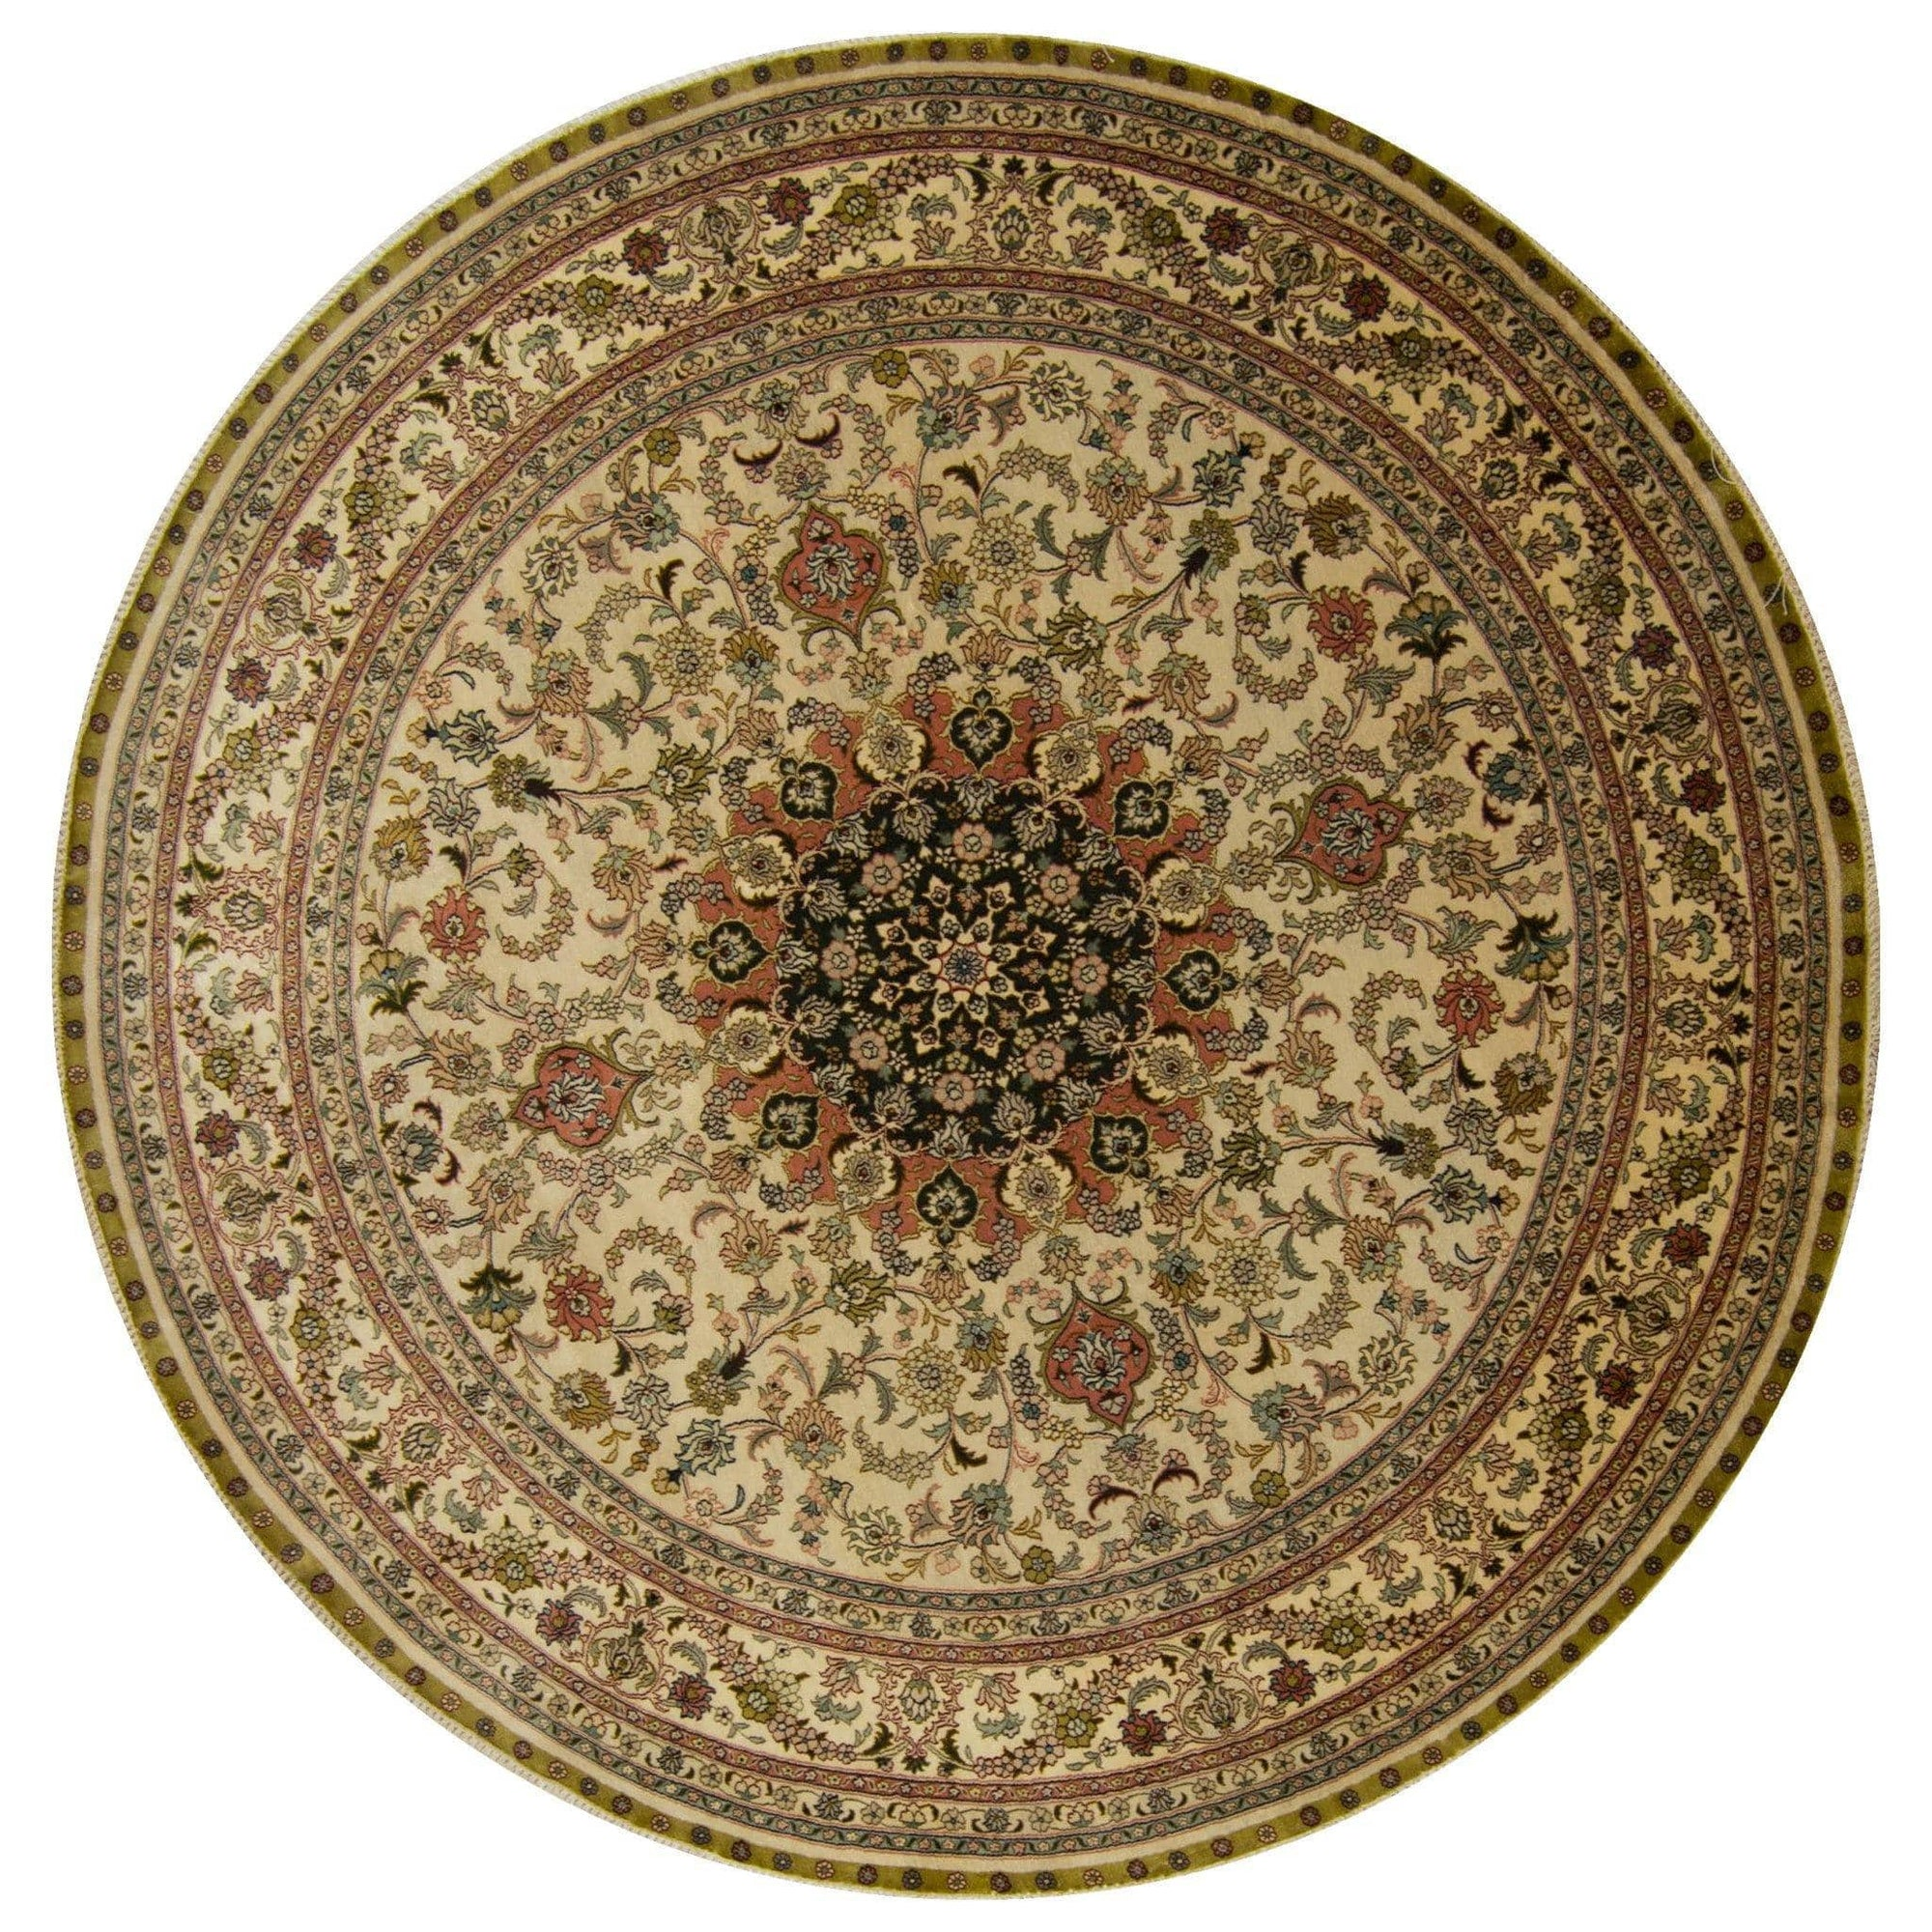 Fine 100% Silk Round Rug 183cm x 183cm Persian-Rug | House-of-Haghi | NewMarket | Auckland | NZ | Handmade Persian Rugs | Hand Knotted Persian Rugs